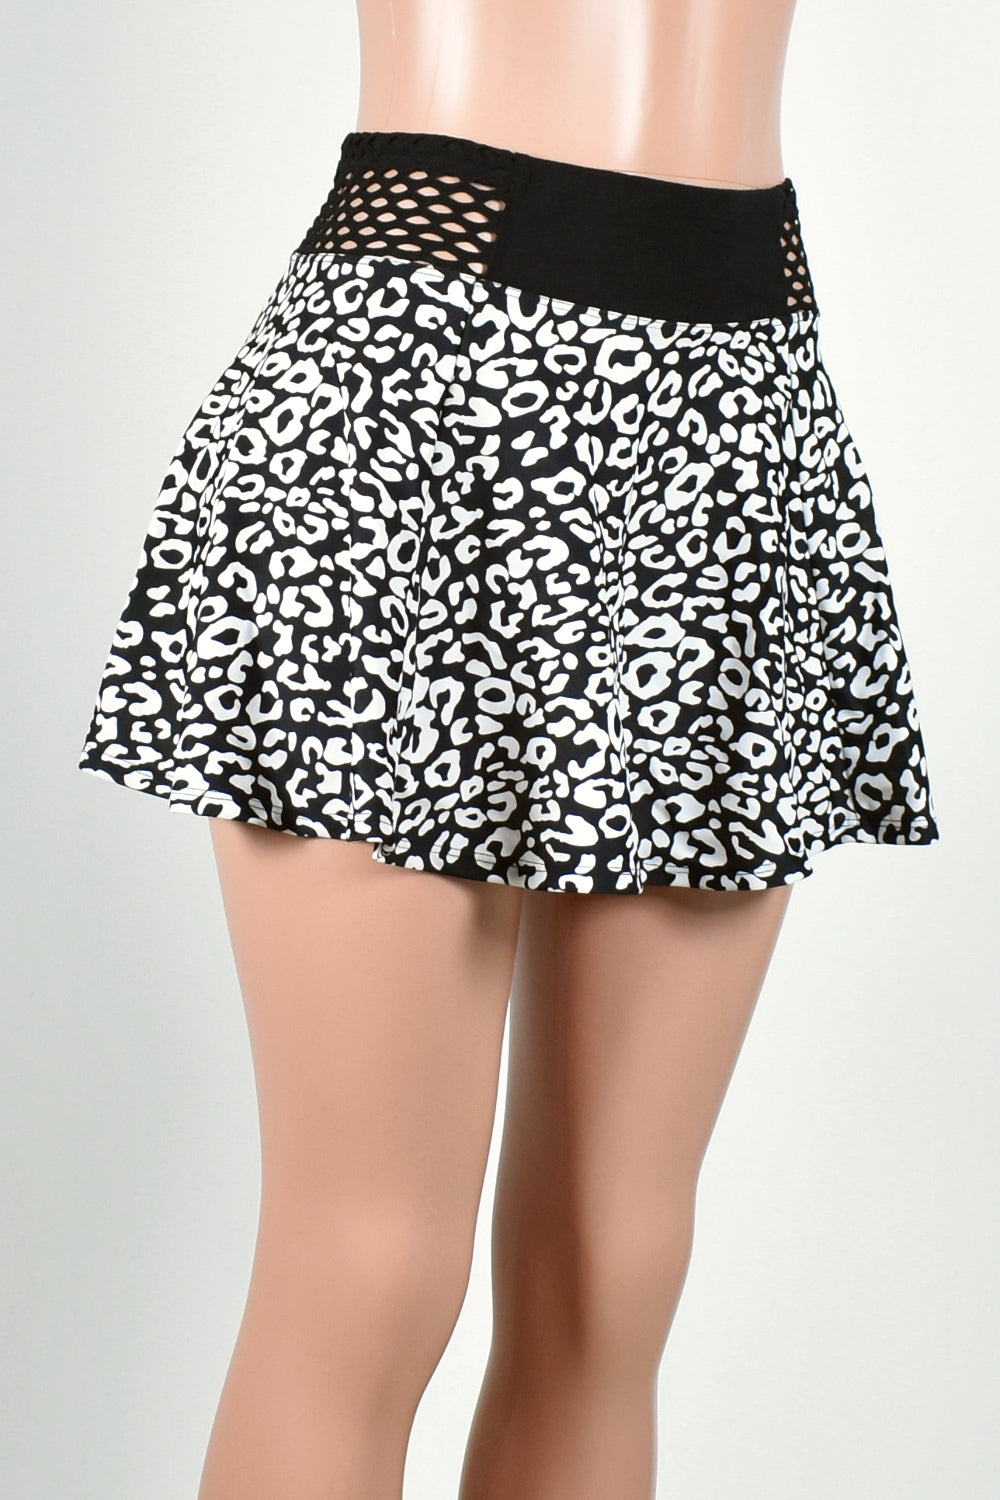 Black and White Leopard Skirt with Fishnet Waistband (Two Length Options)